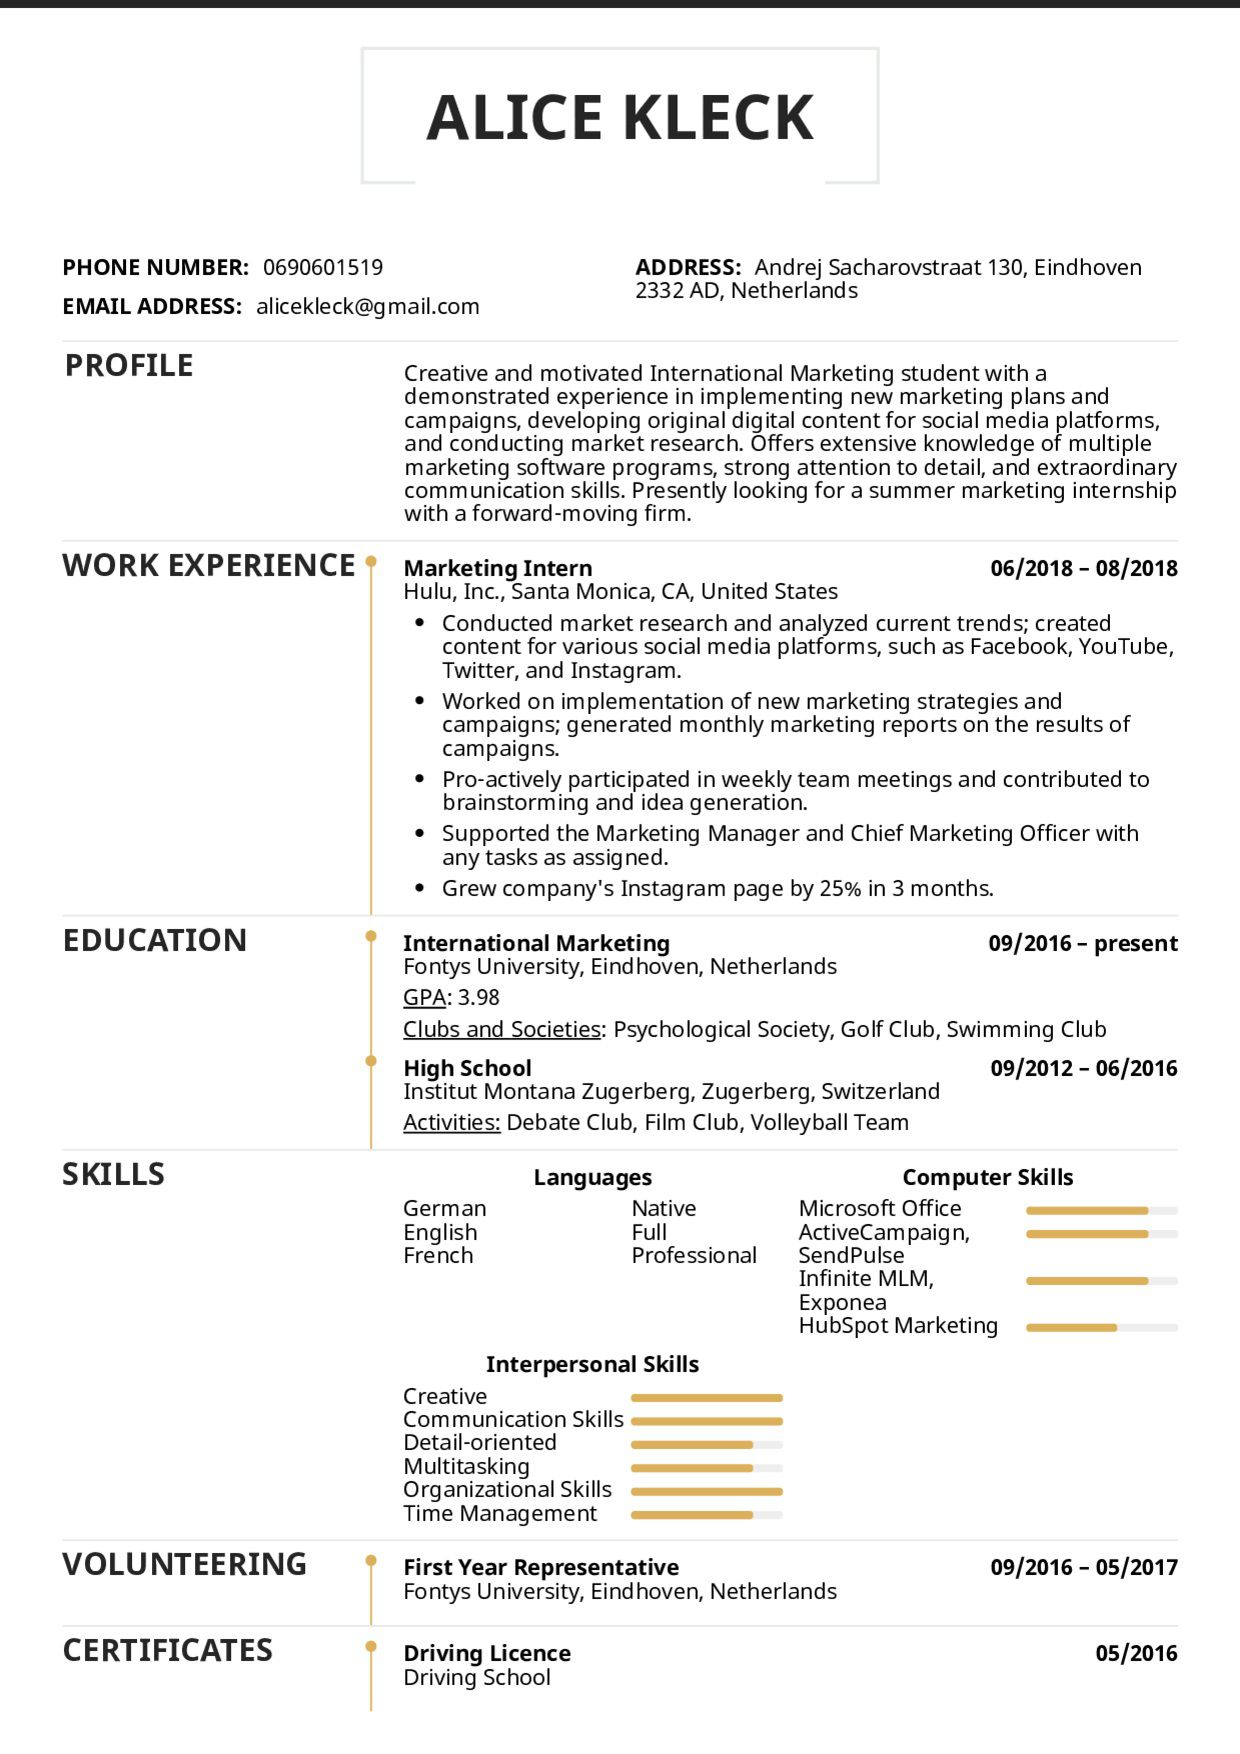 002 Best College Internship Resume Template Photo  Student Job For DownloadFull